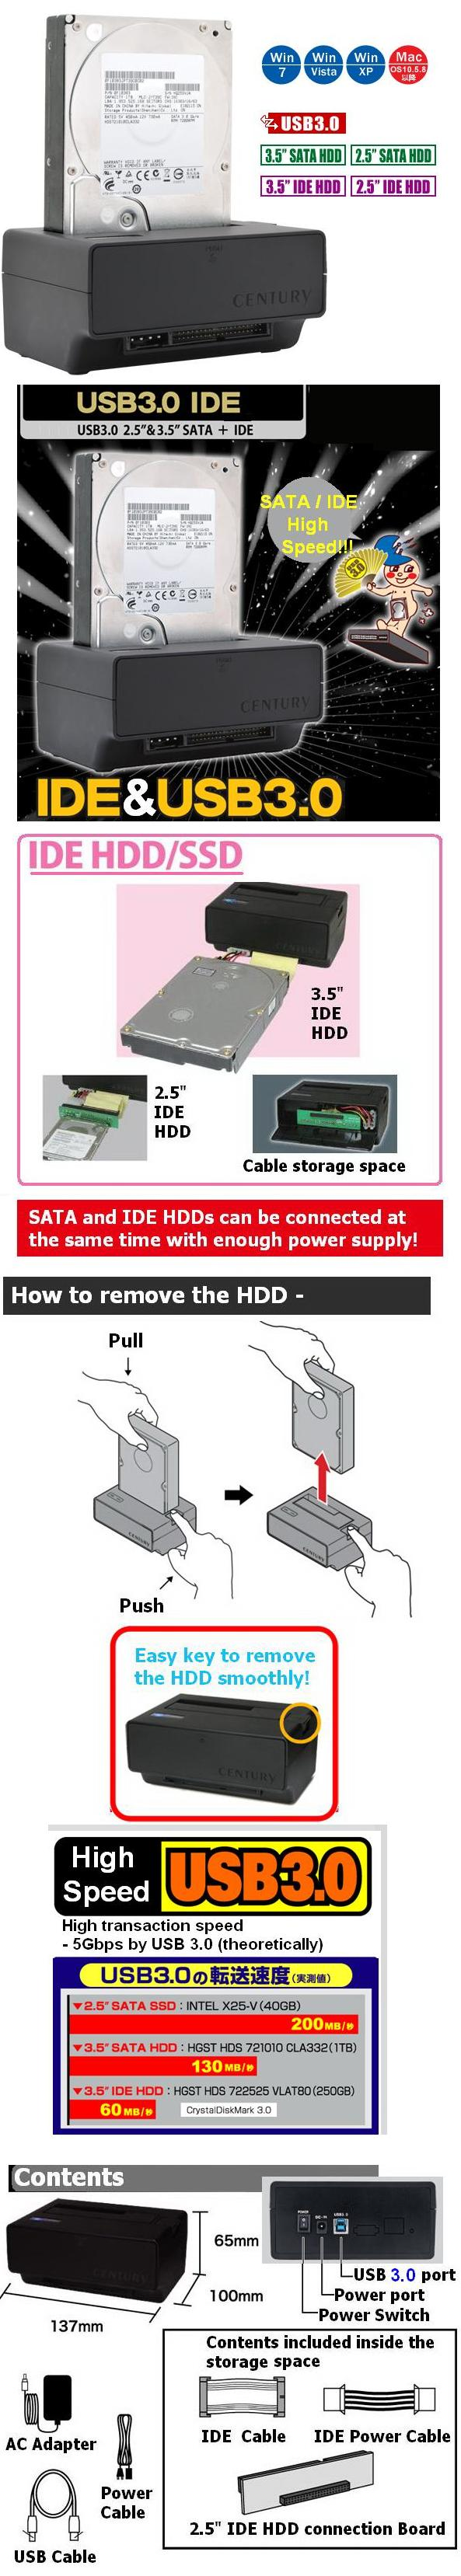 Century Sata Drive To Usb Wiring Diagram High Speed 30 Transaction Is Build In